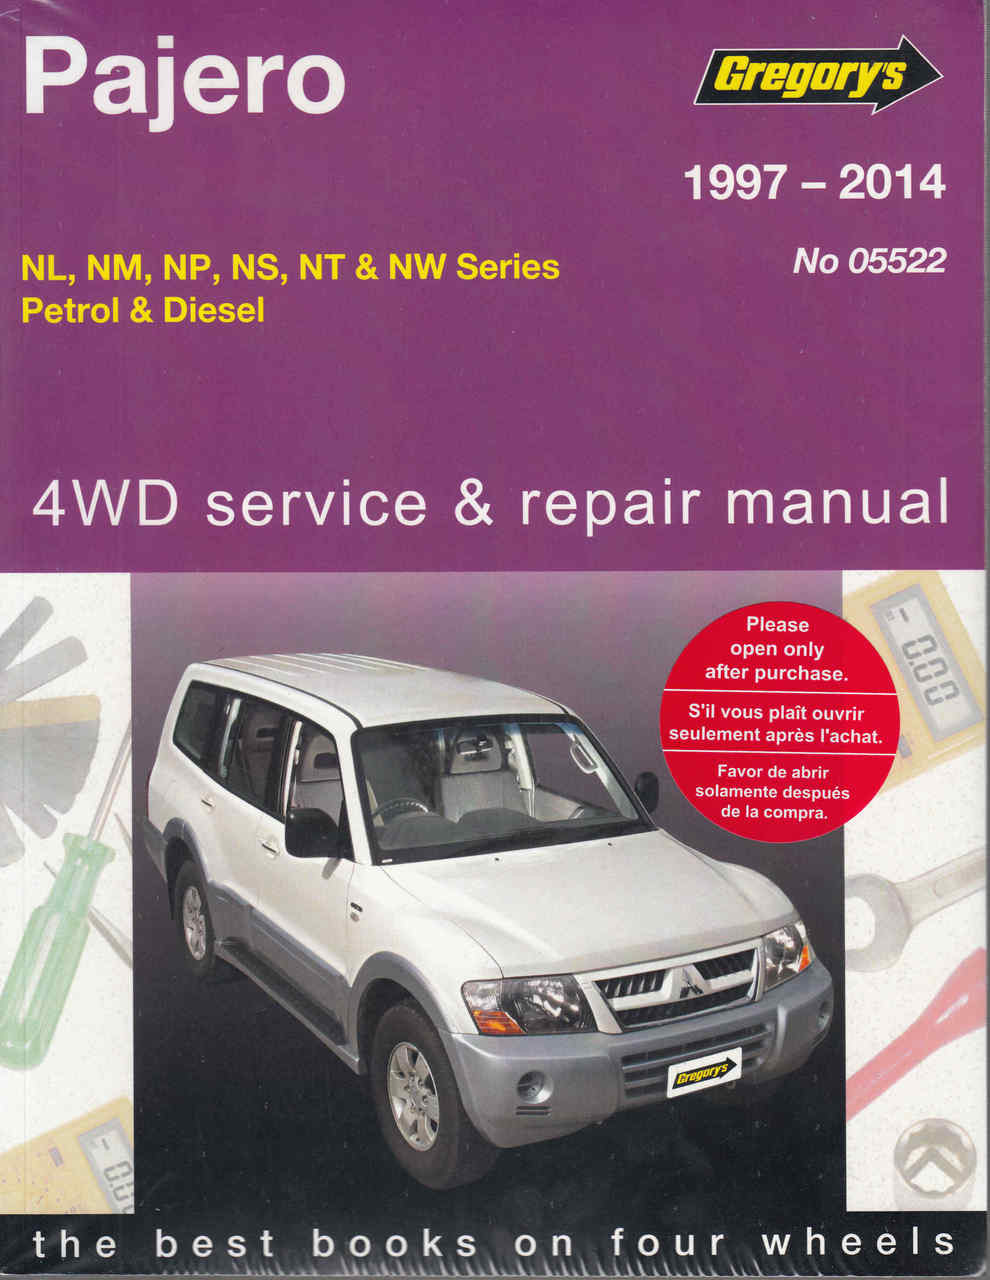 hight resolution of mitsubishi pajero nl nm np ns nt nw series petrol